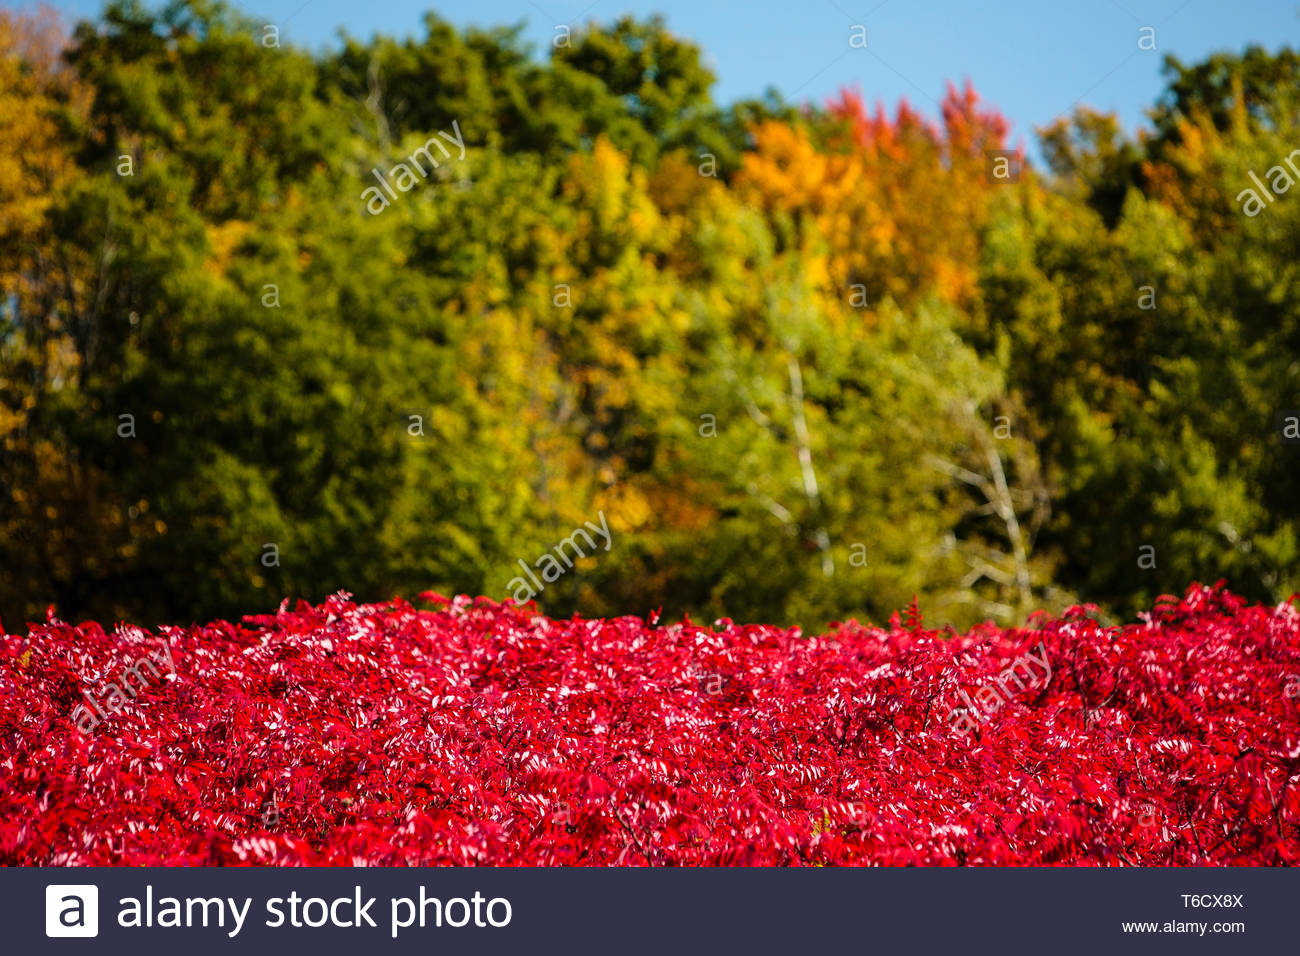 Brilliant sumac contrasts sharply against the changing colors of the maples and autumn blue sky in late September within the Pike Lake Unit, Wisconsin - Stock Image